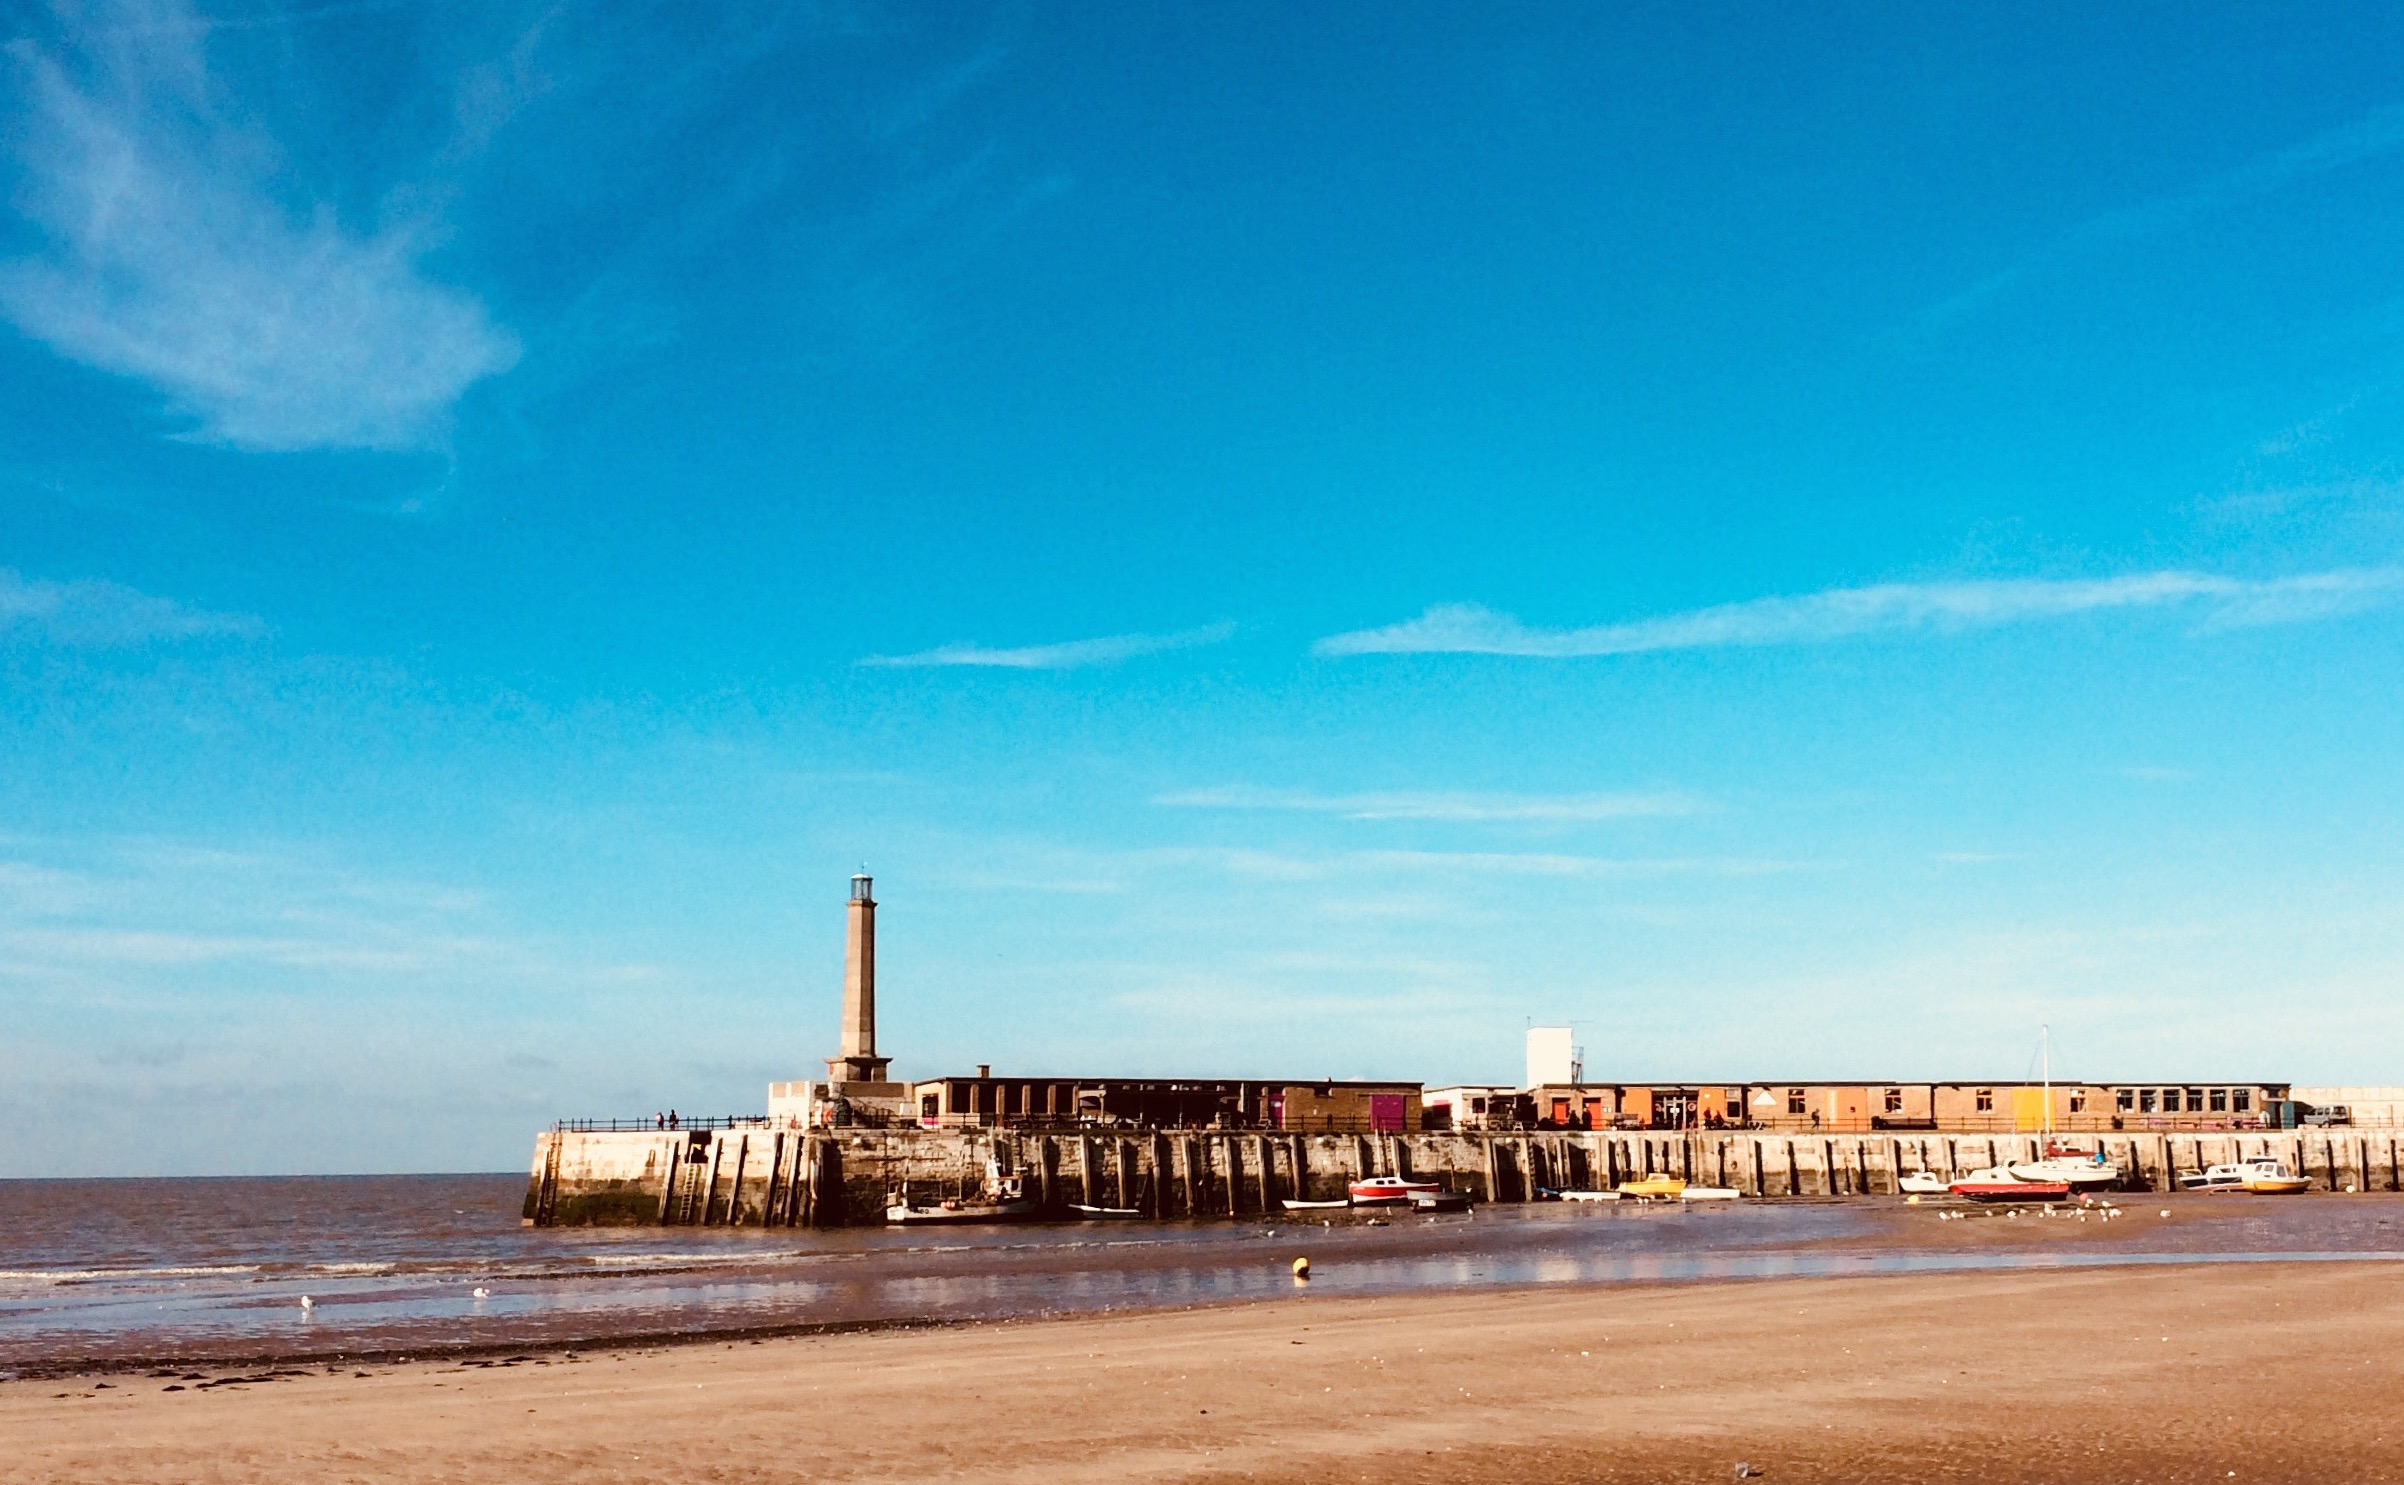 Margate Harbour Arm. Home to many fab cafes, galleries and the famous Shell Lady of Margate - Mrs Booth  The bronze is entitled 'Mrs Booth' after the seaside landlady whose house had spectacular views over Margate harbour. Twice widowed, Mrs Booth's first husband had drowned at sea and when Turner came to Margate to paint, it was with Mrs Booth he chose to stay. They began a love affair in 1833 and lived as Mr and Mrs Booth, with Mrs Booth supporting Turner financially until Turner's death.  The site of Mrs Booth's former lodgings is now occupied by Margate's new Turner Contemporary Gallery designed by David Chipperfield Associates. Turner remarked that 'the skies over Thanet are the loveliest in all Europe', often returning to Margate to capture their shifting light in lucid paint. The opportunity for the gallery is to recreate that experience for visitors through contemporary art and the Turners that will be exhibited there.  Mrs Booth stands silhouetted against Chipperfield's stark white building like a Victorian paper cut out. She is looking out to the sea and sky beloved of Turner.